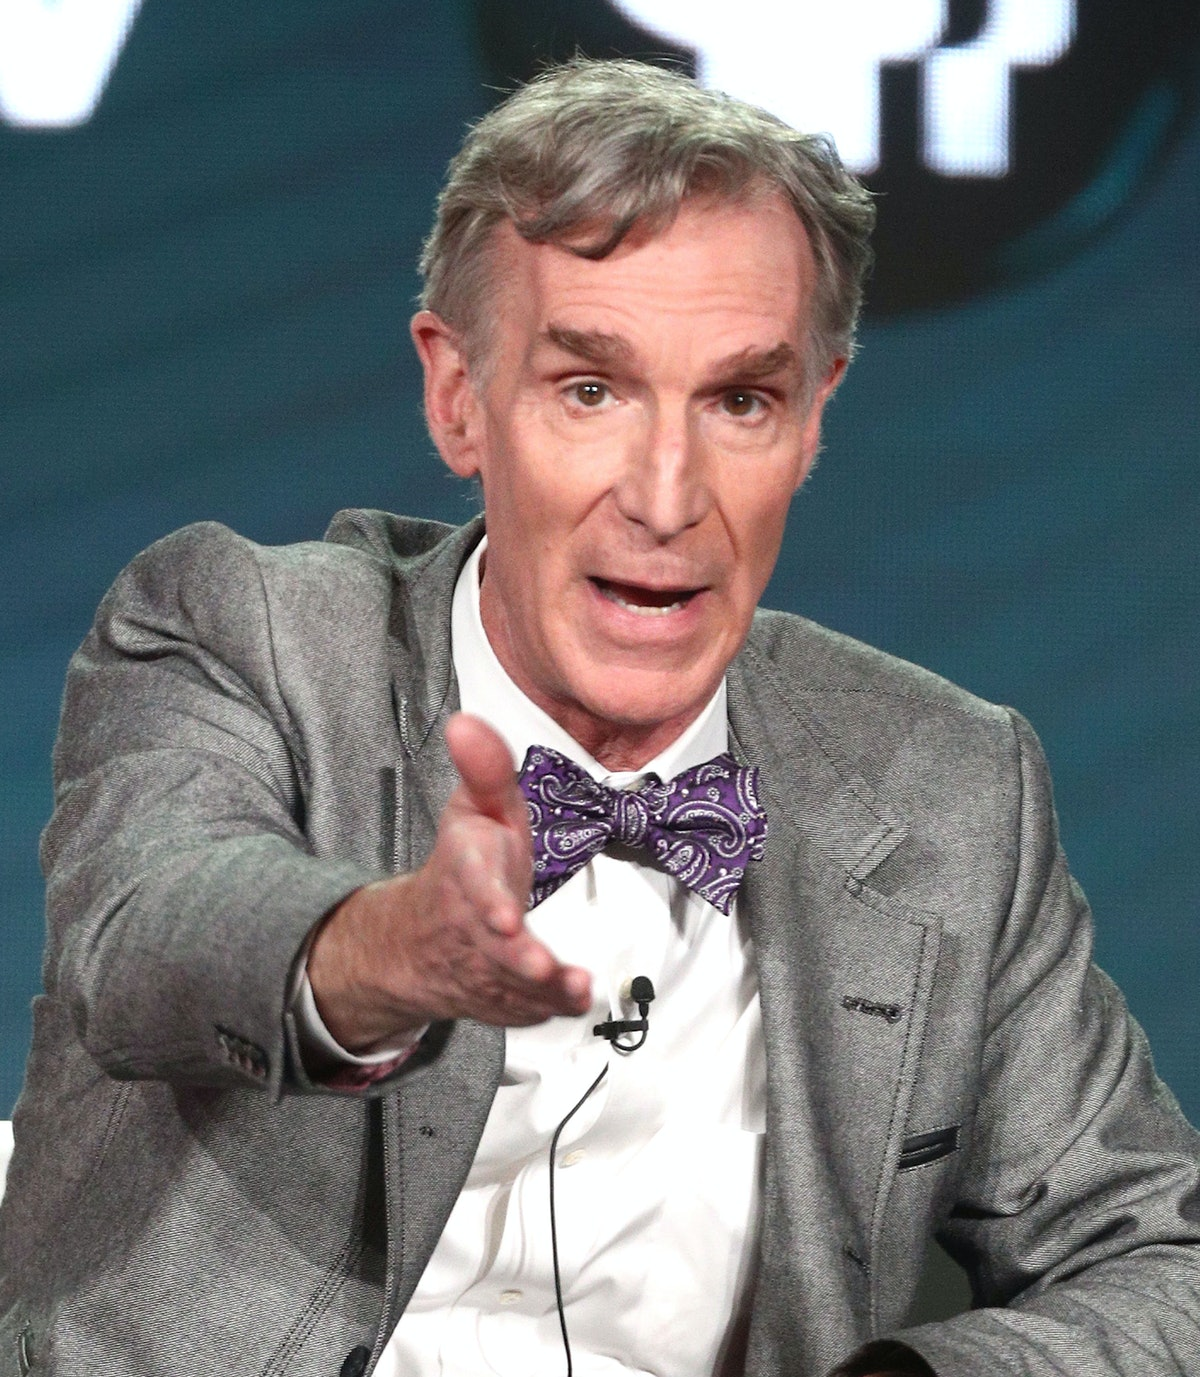 'Bill Nye Saves The World' Season 2 Is Only Part Of The Science Guy's Plan To Affect Change